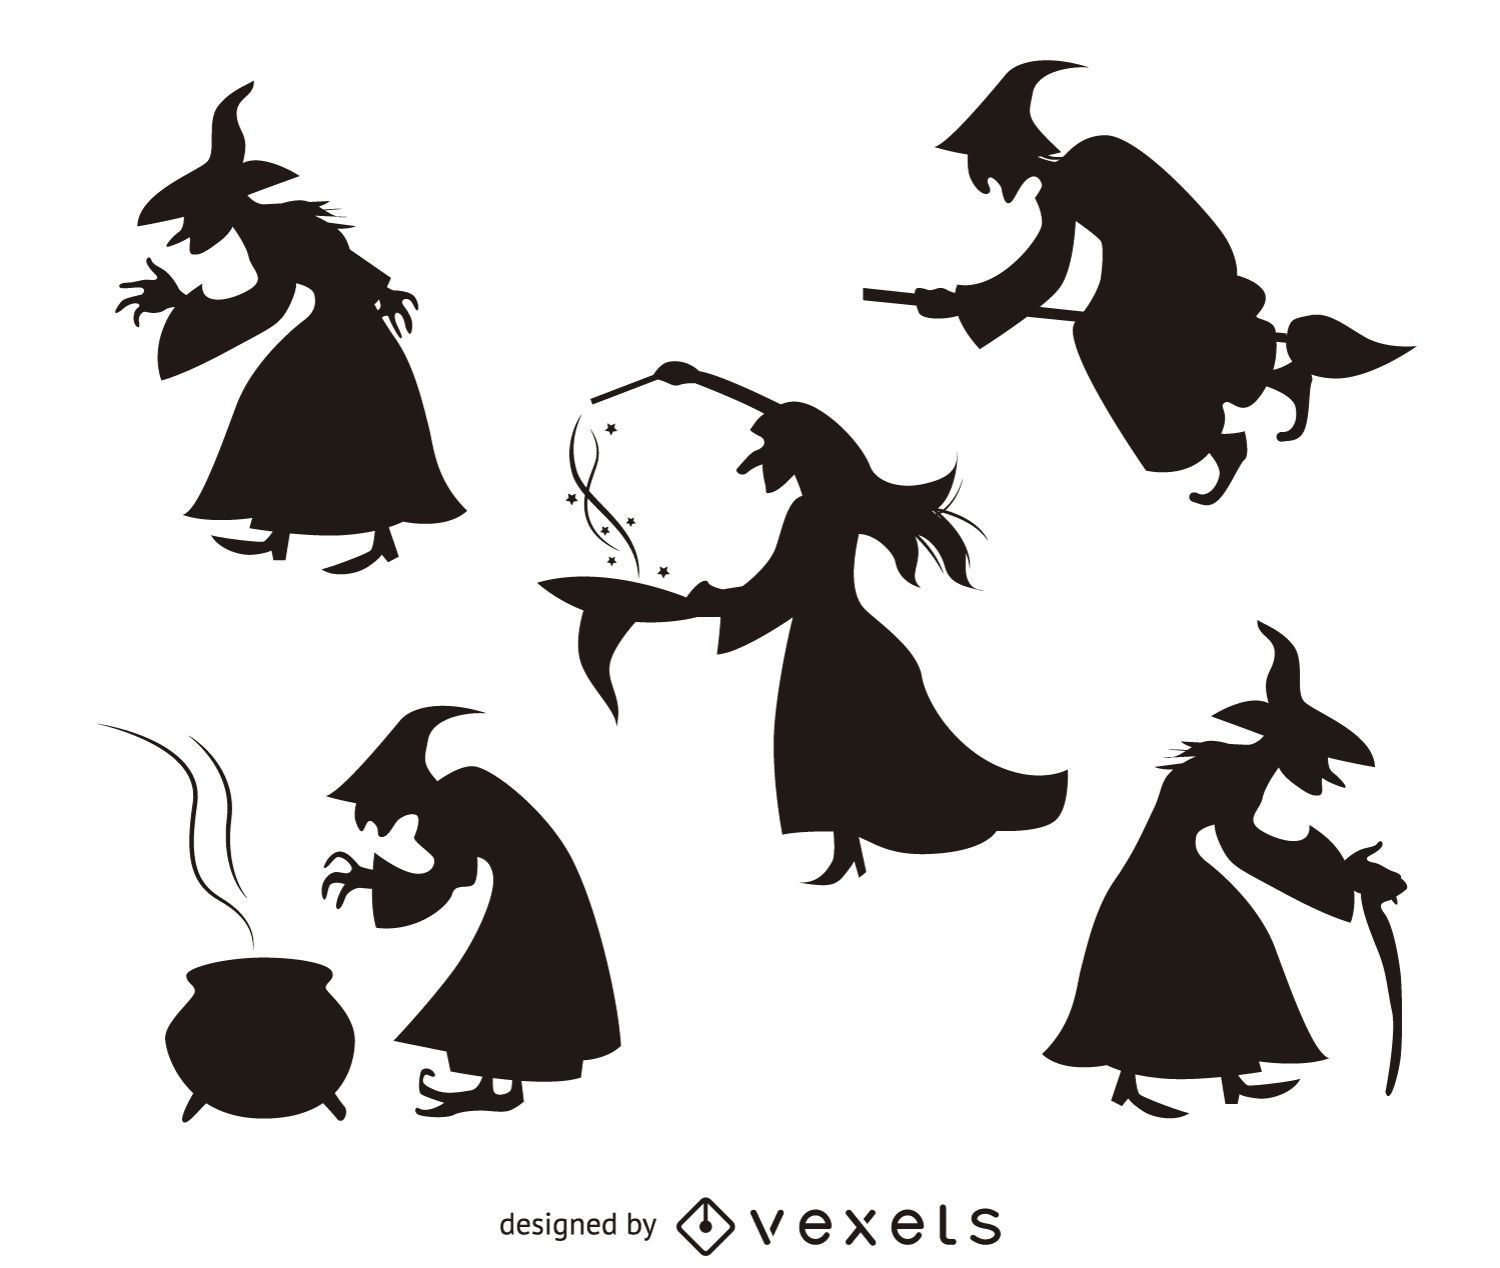 5 halloween witch silhouettes download large image 1258x1064px - Halloween Which